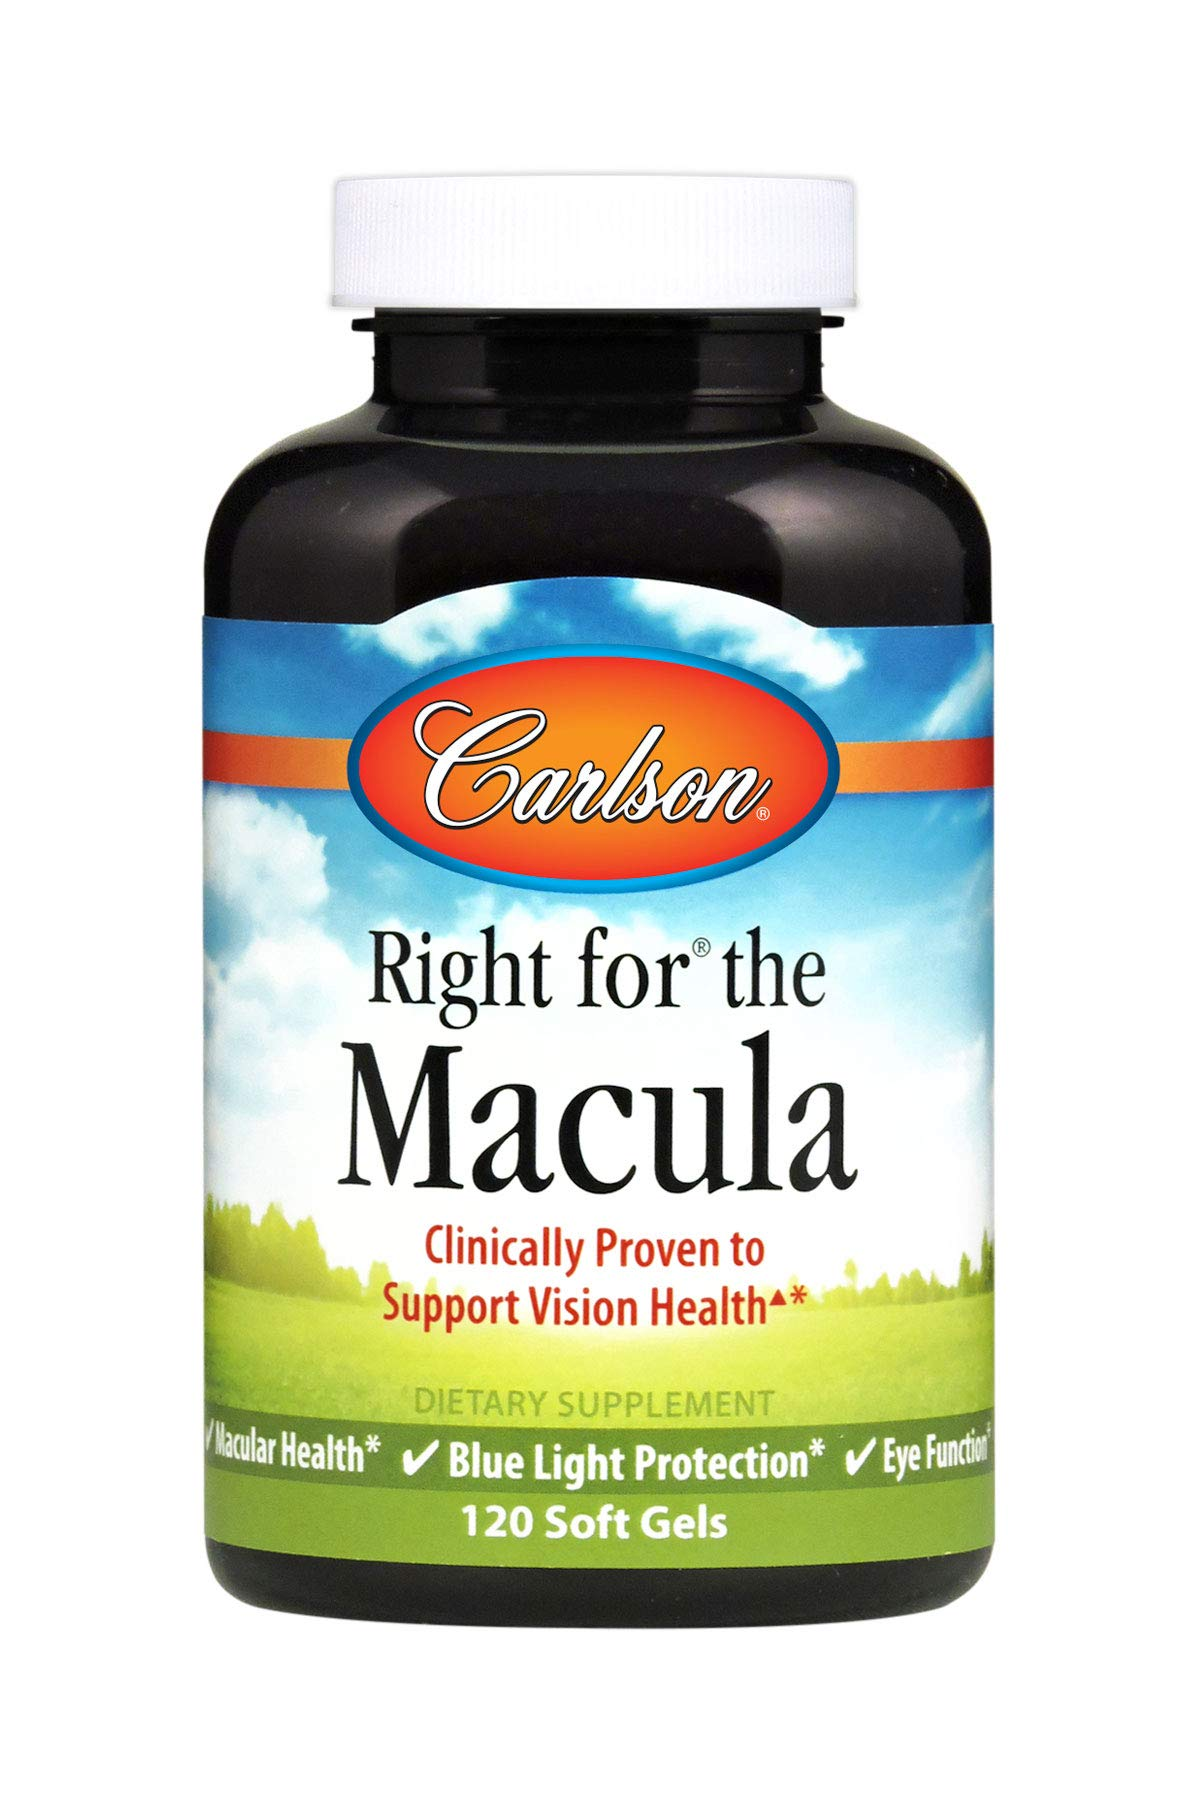 Carlson - Right for Macula, Clinically Proven to Support Vision Health, Macular Health, Blue Light Protection & Eye Function, 120 soft gels by Carlson